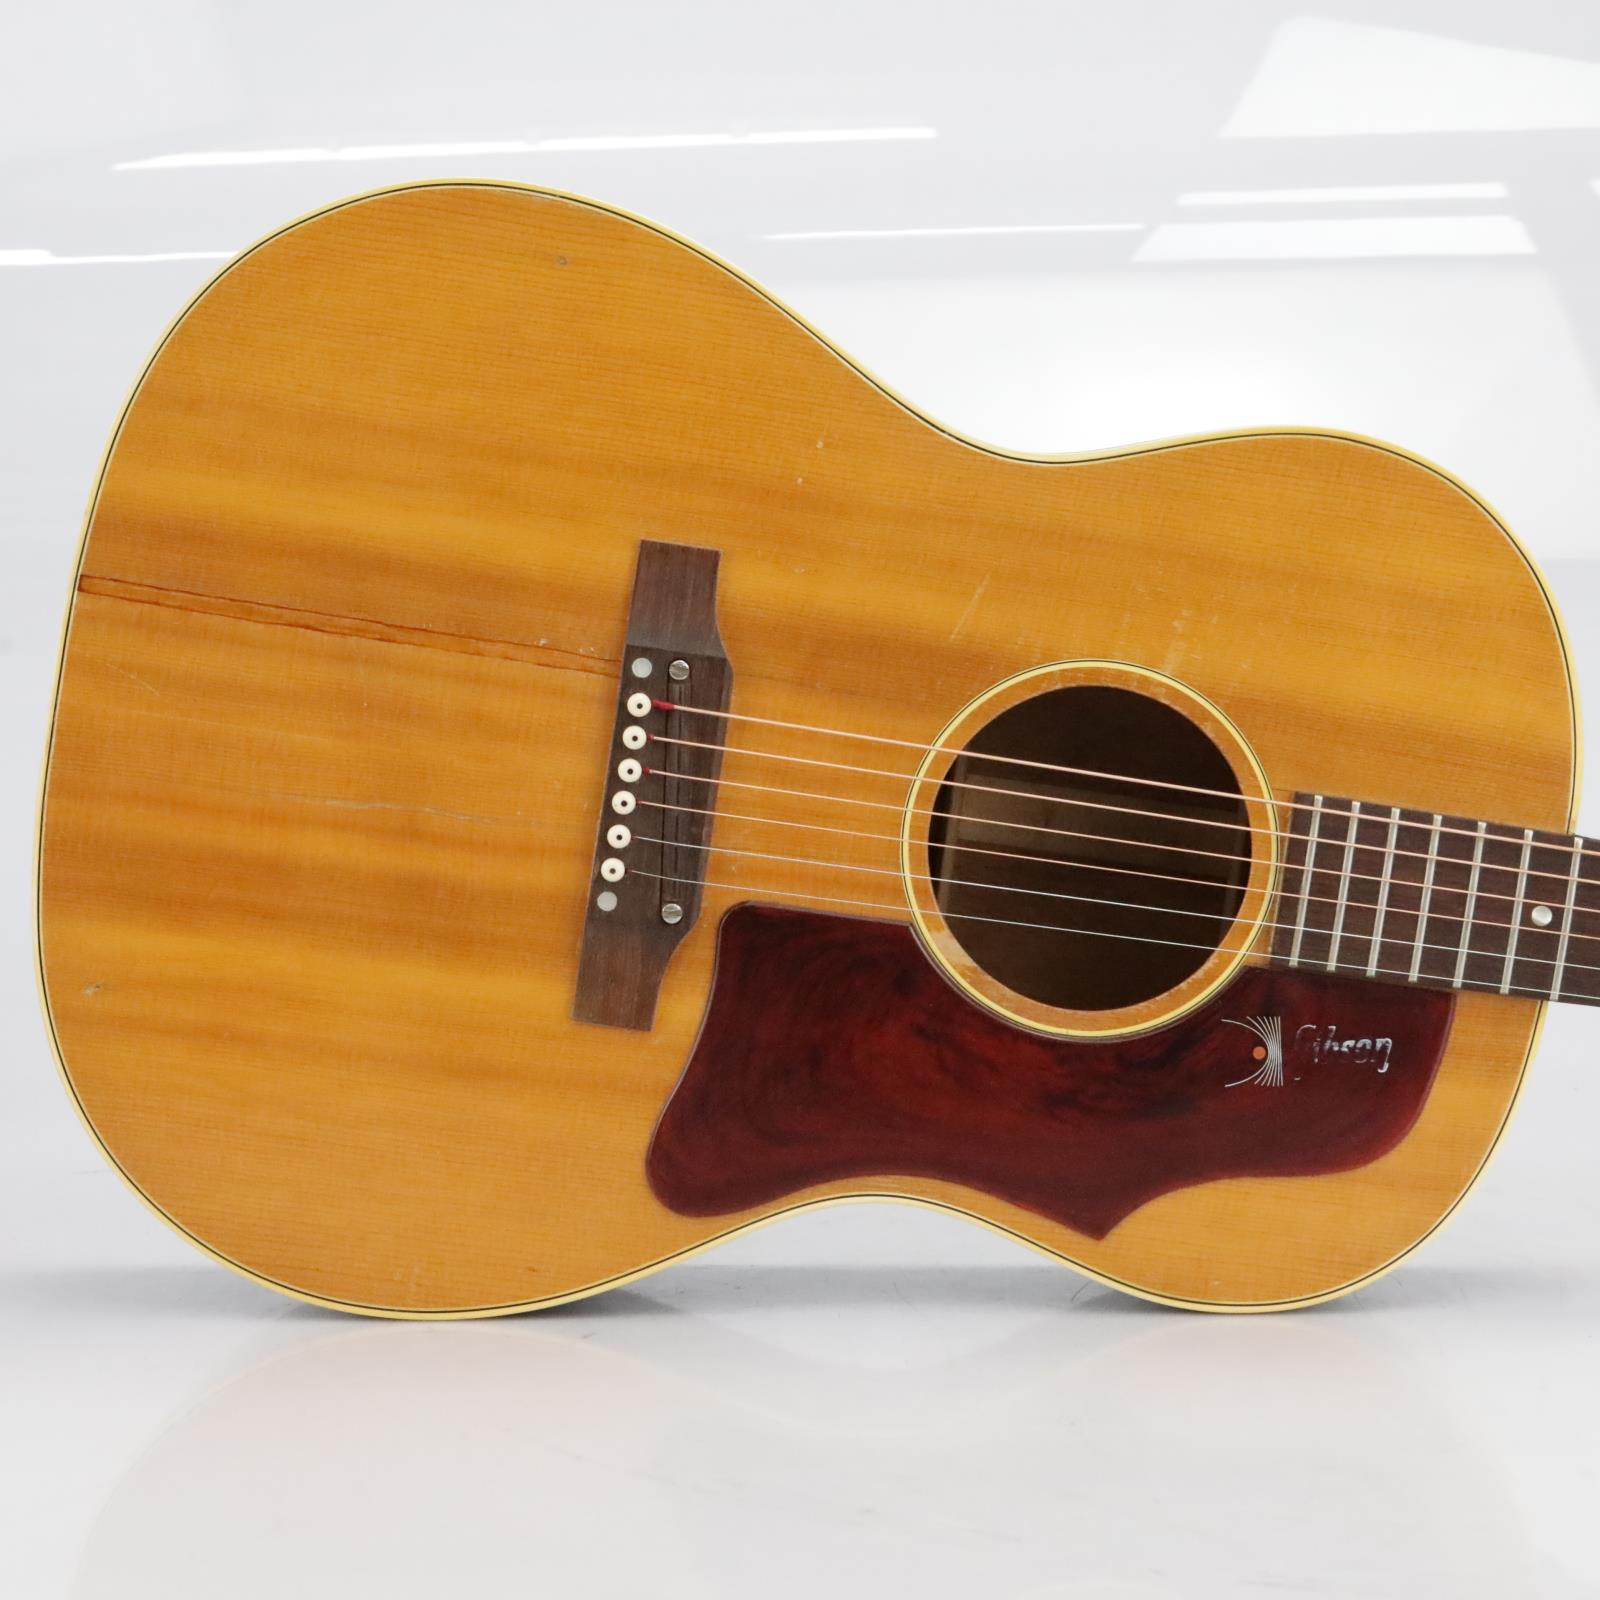 1966 Gibson B-25 Natural Acoustic Flat Top Guitar w/ Case #40176